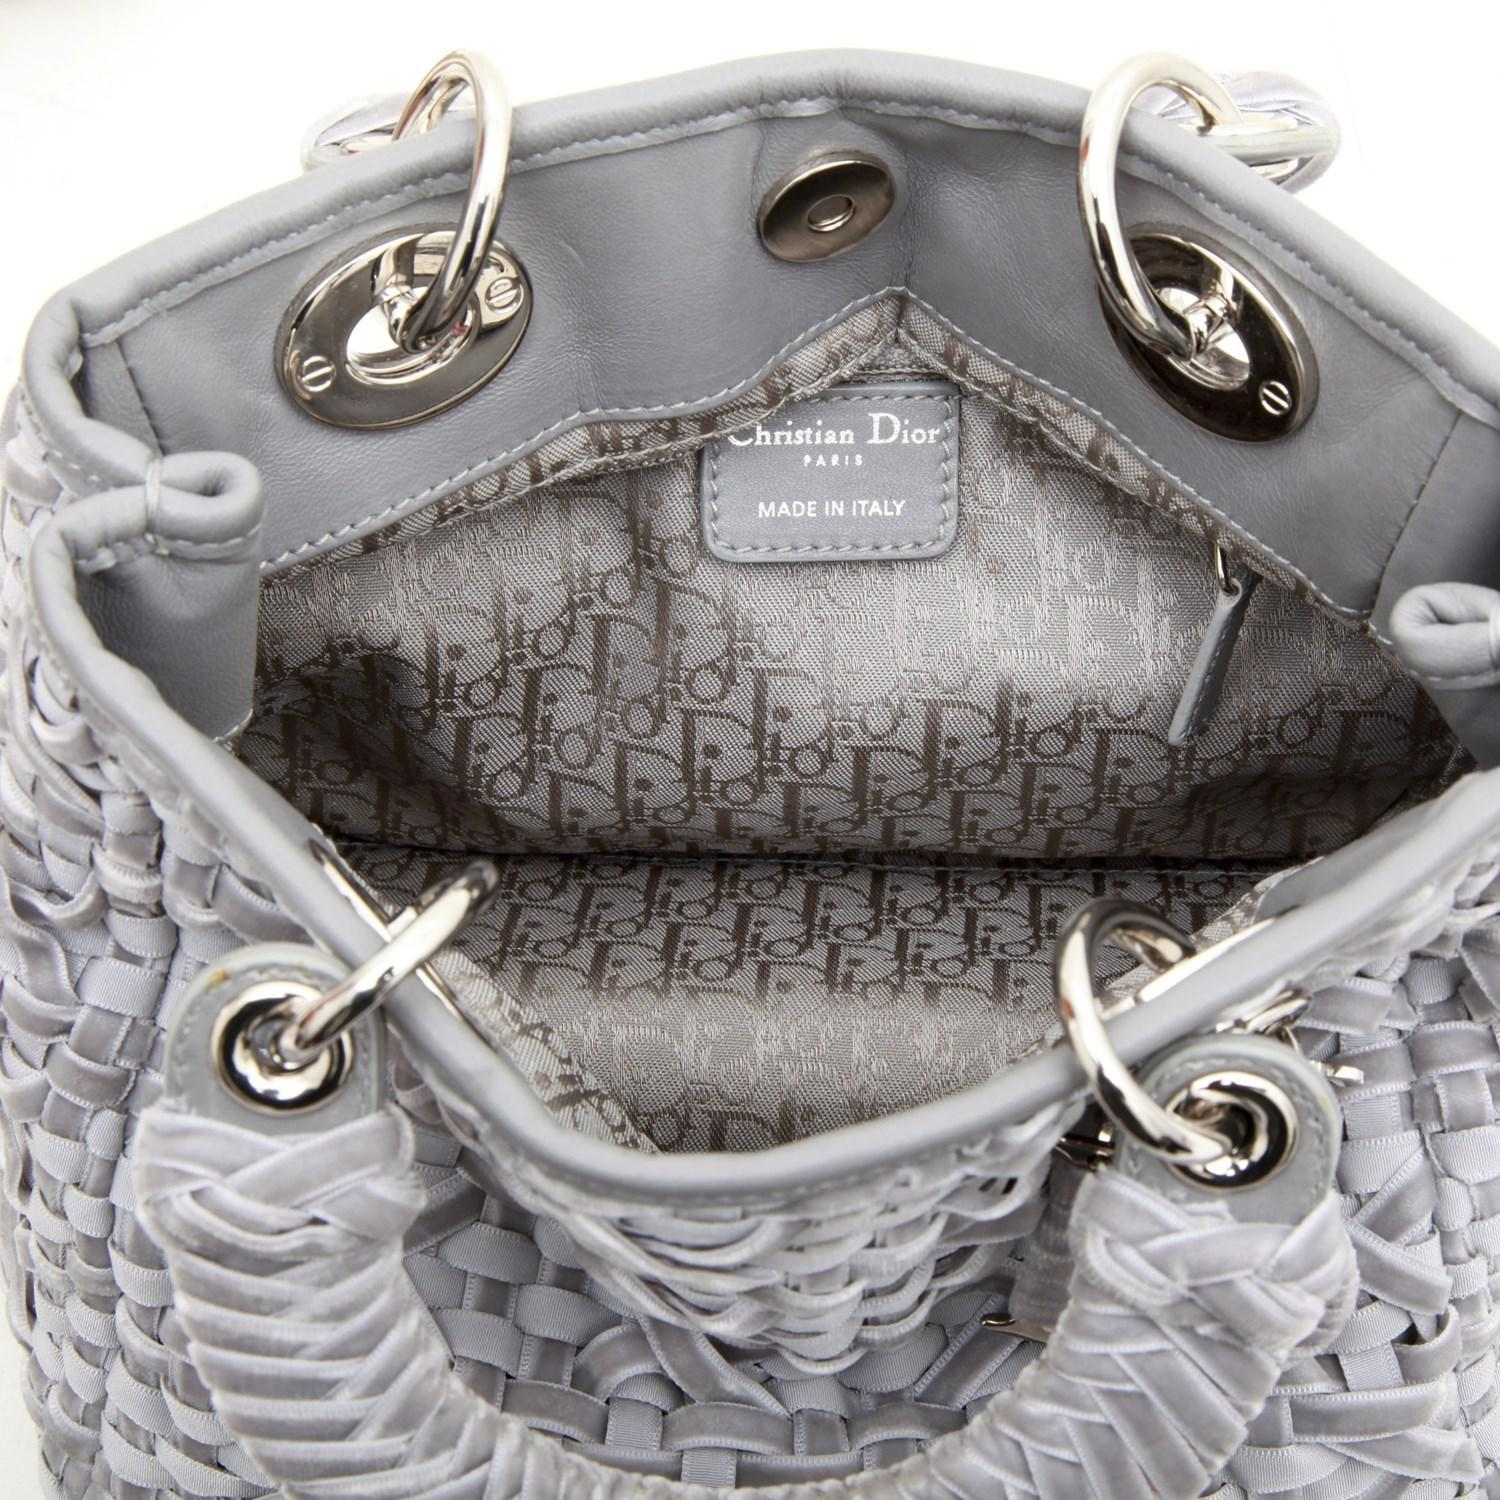 Dior Lady D Bag In Gray Woven, Cotton And Leather Ribbons